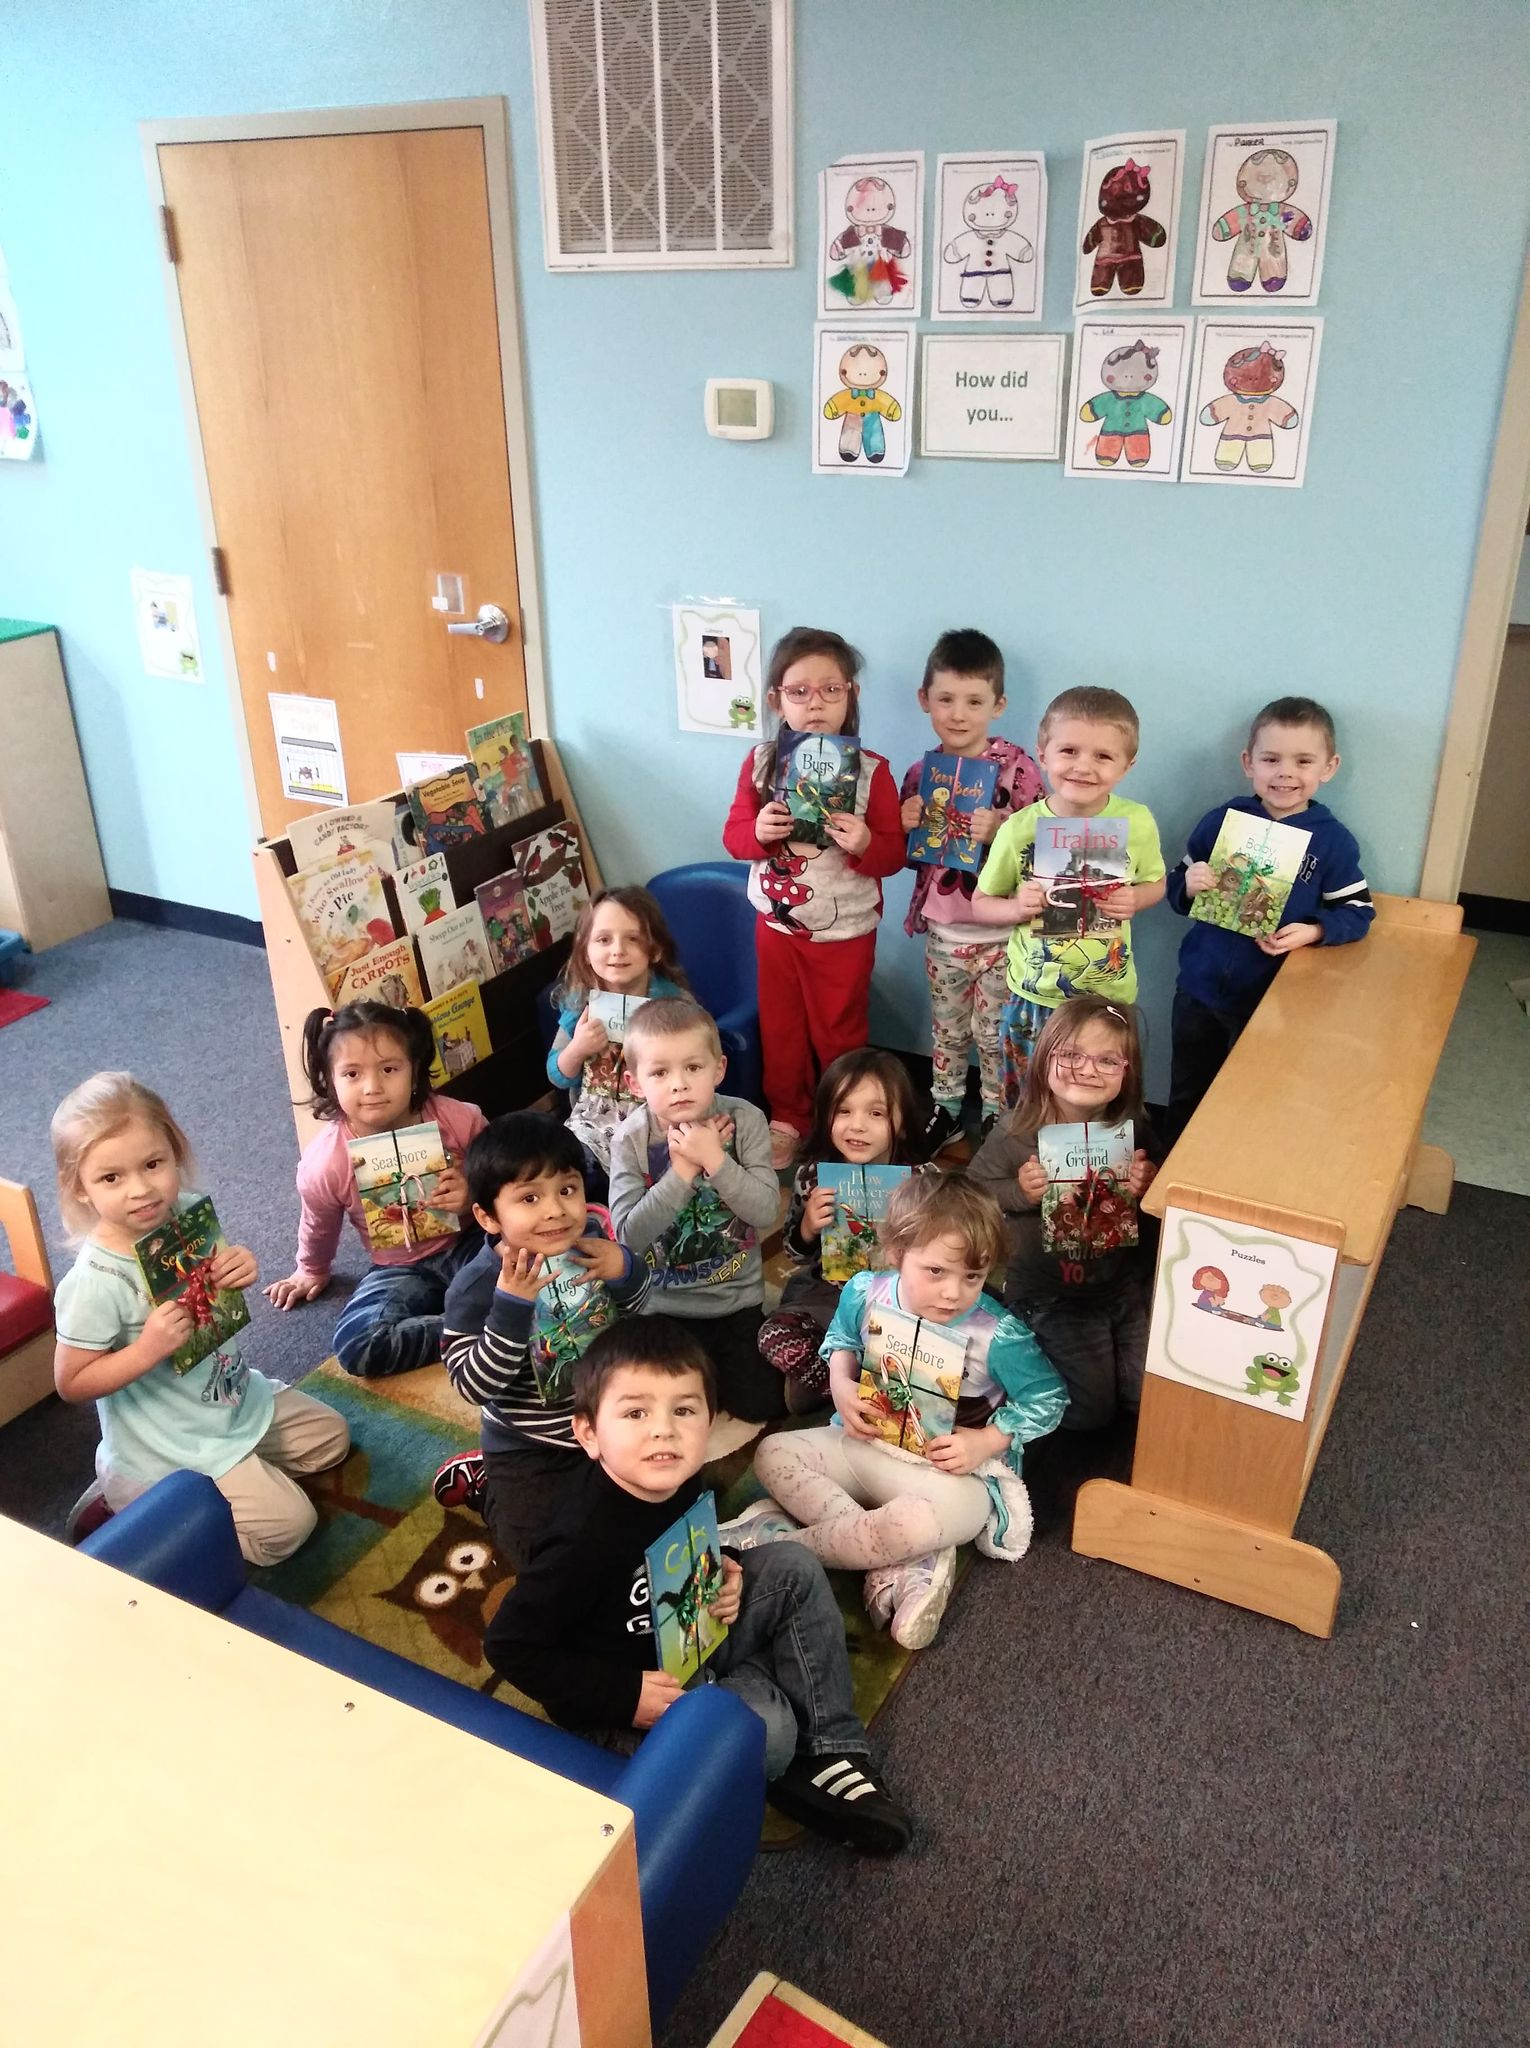 Students in Reedsburg Headstart Programs pose with some of the new books given by Usborne Books & More. (Submitted photos)